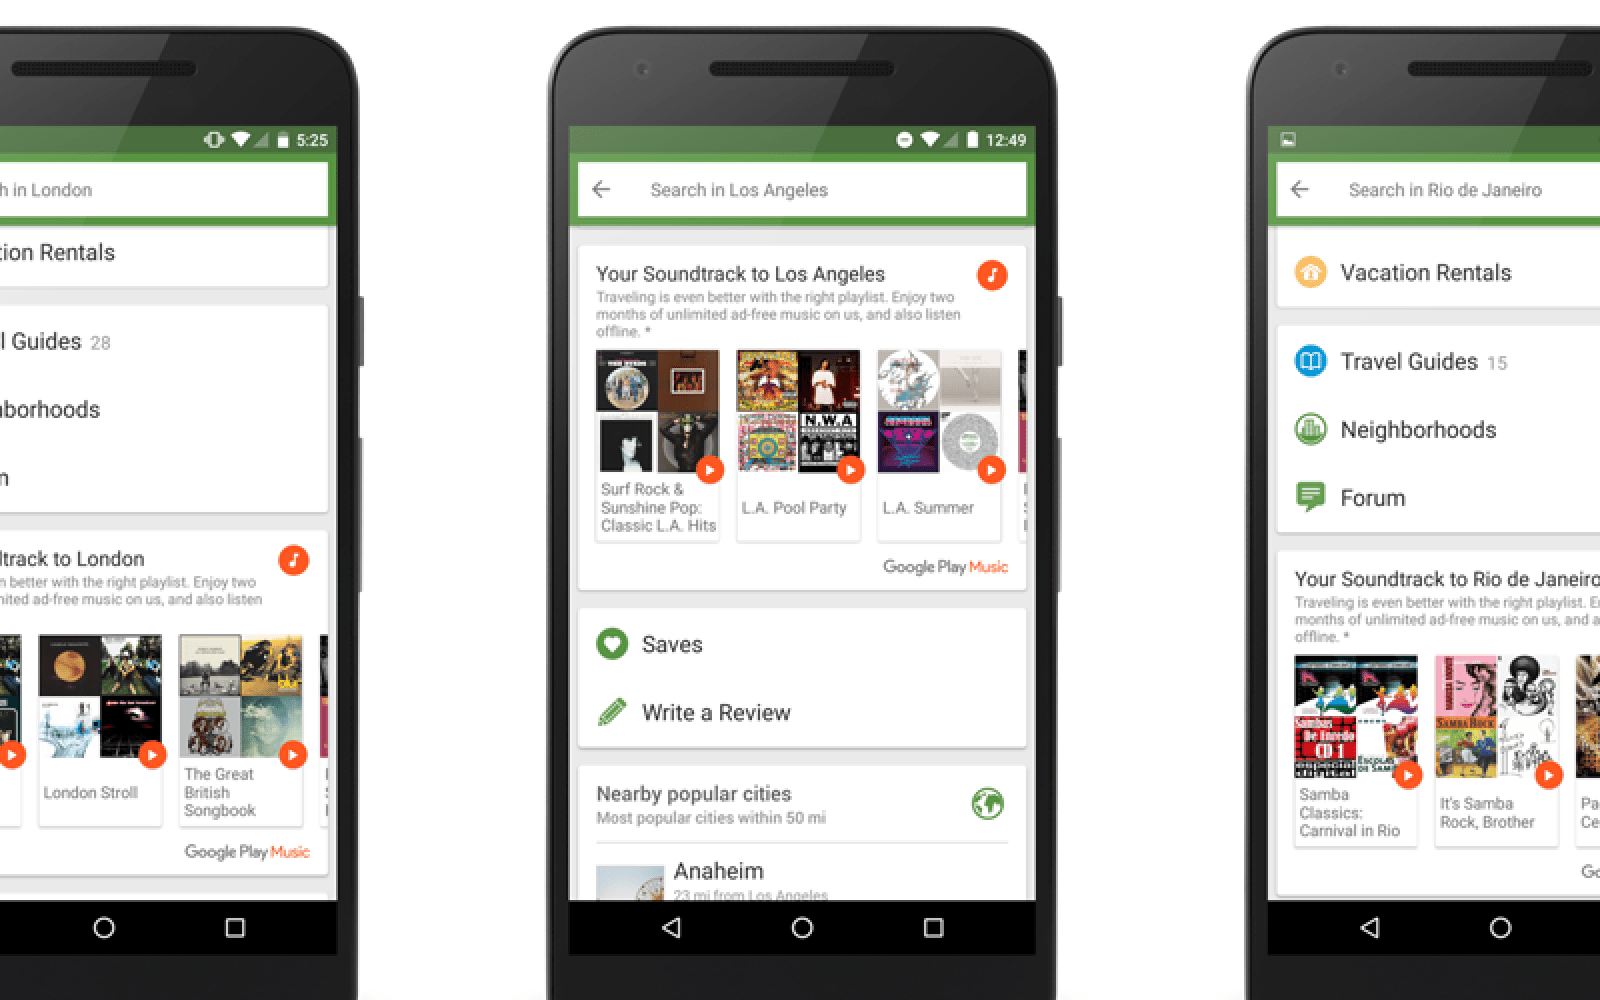 Get two months free Google Play Music premium by using